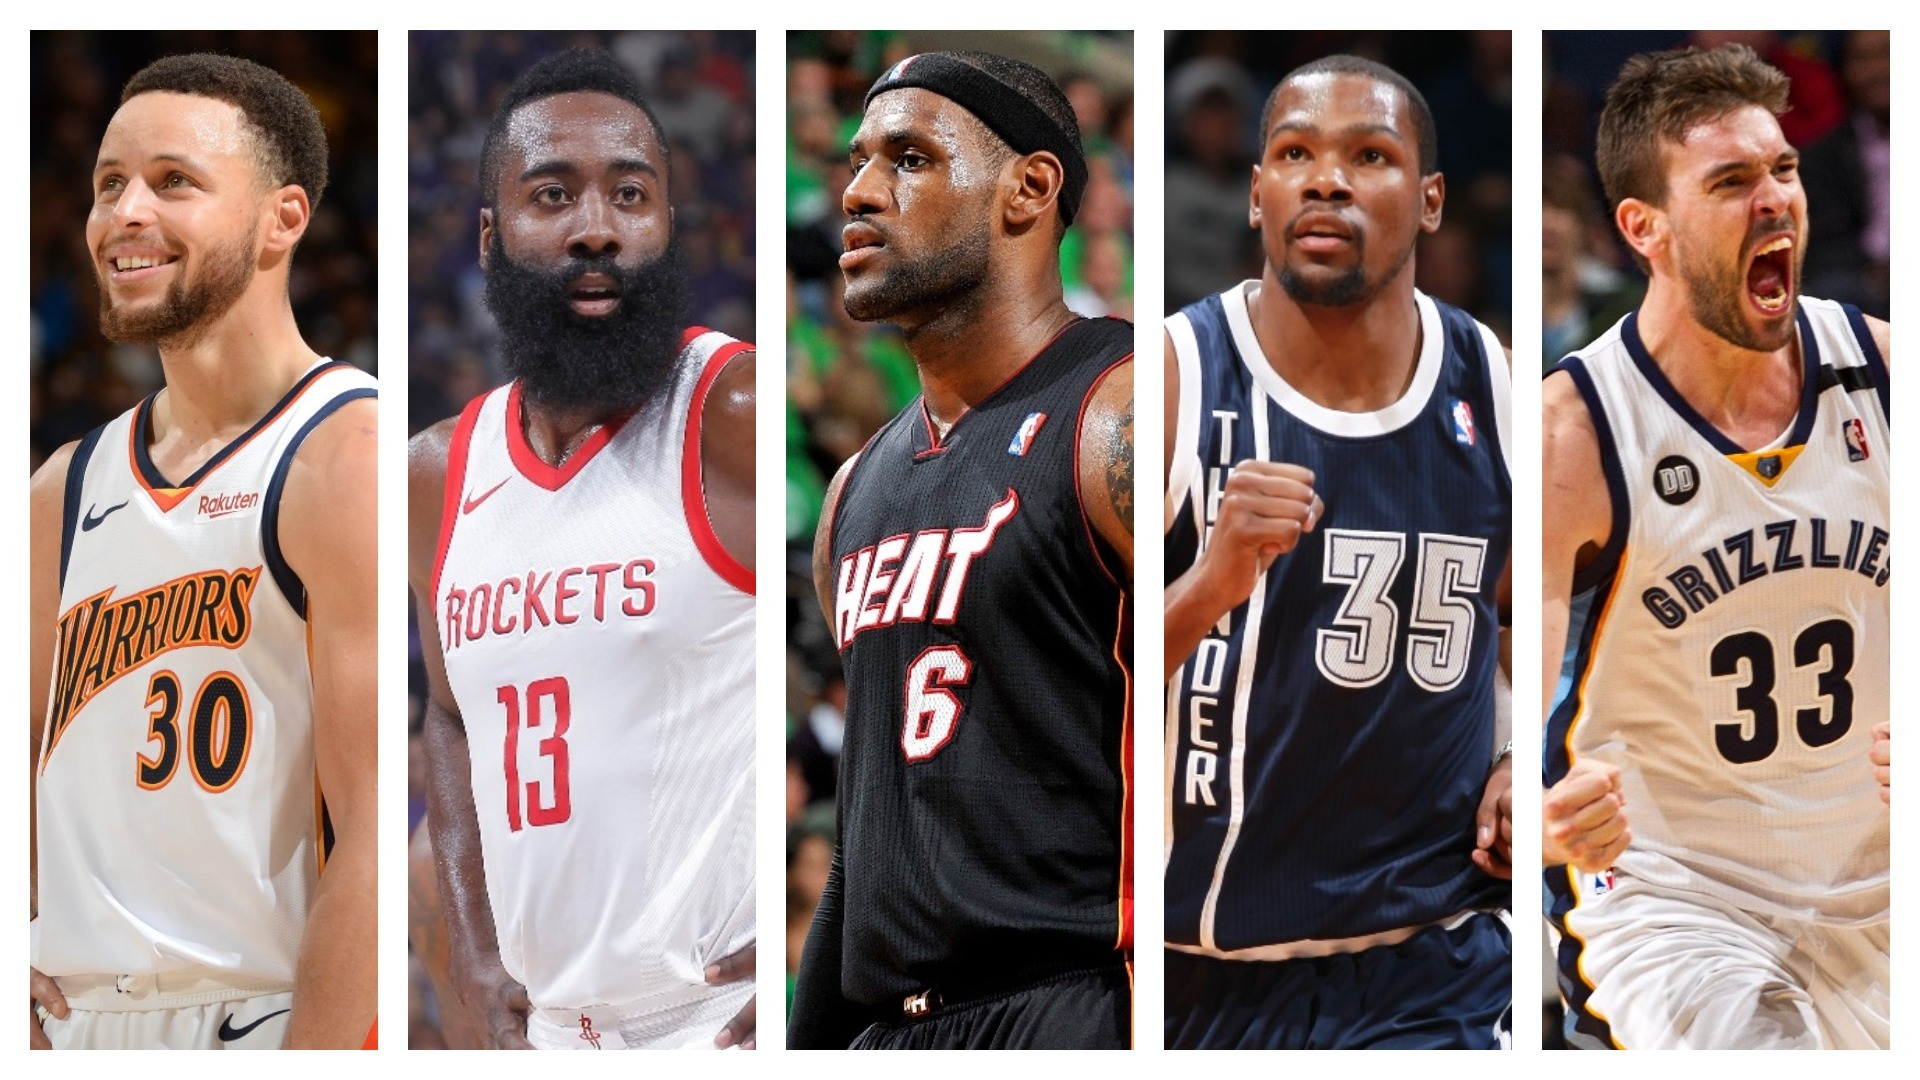 The 2010s All-Decade Team